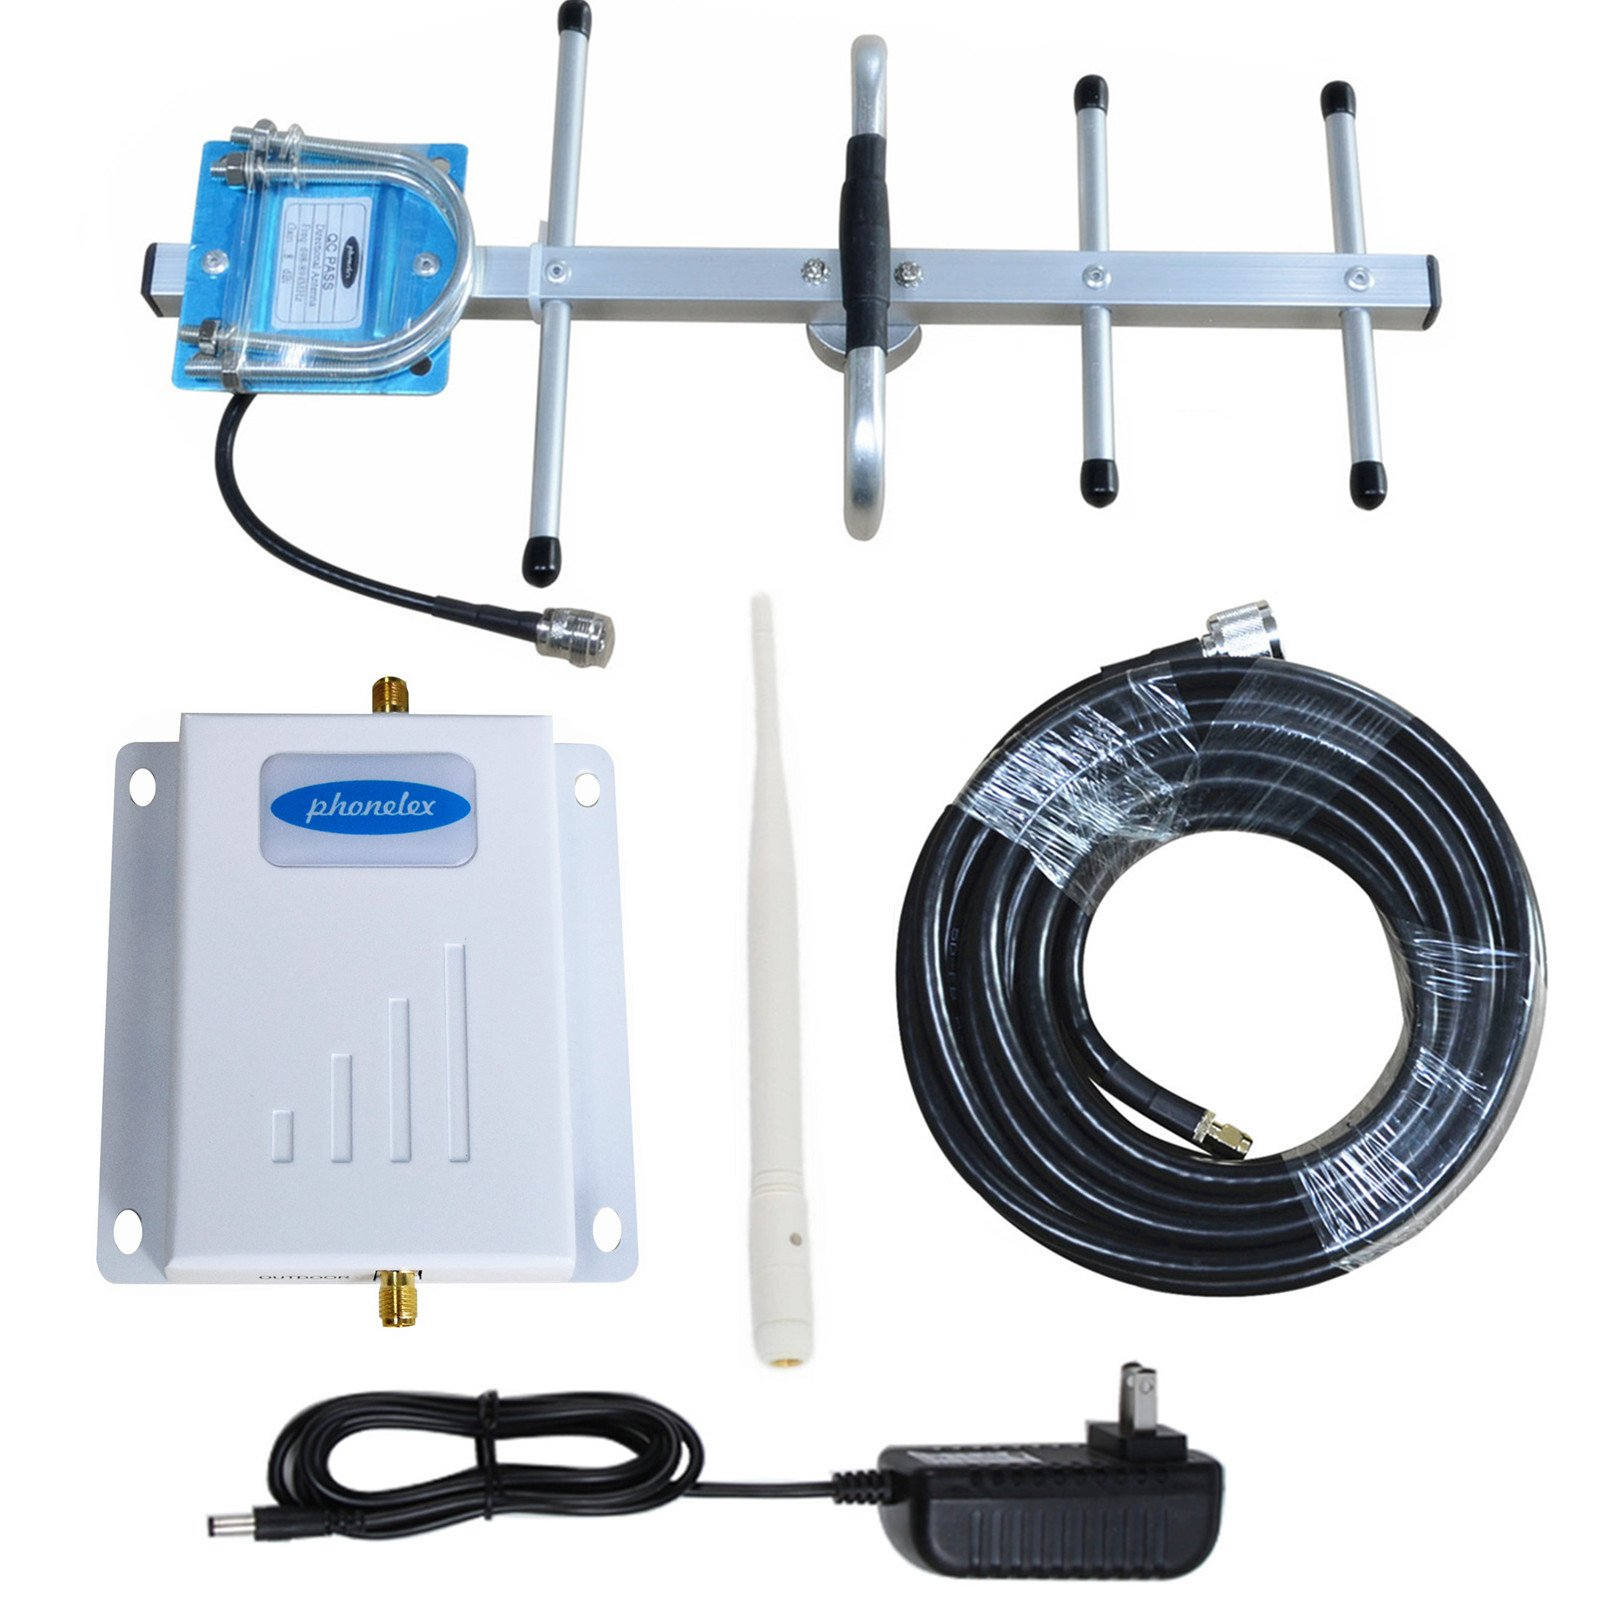 Phonelex Cell Signal Booster 700Mhz FDD 4G LTE AT&T T-Mobile Band12/17 Mobile phone Amplifier Reception with Inside whip and Outside YaGi Directioanl Antenna Kits For Home office Basement by phonelex